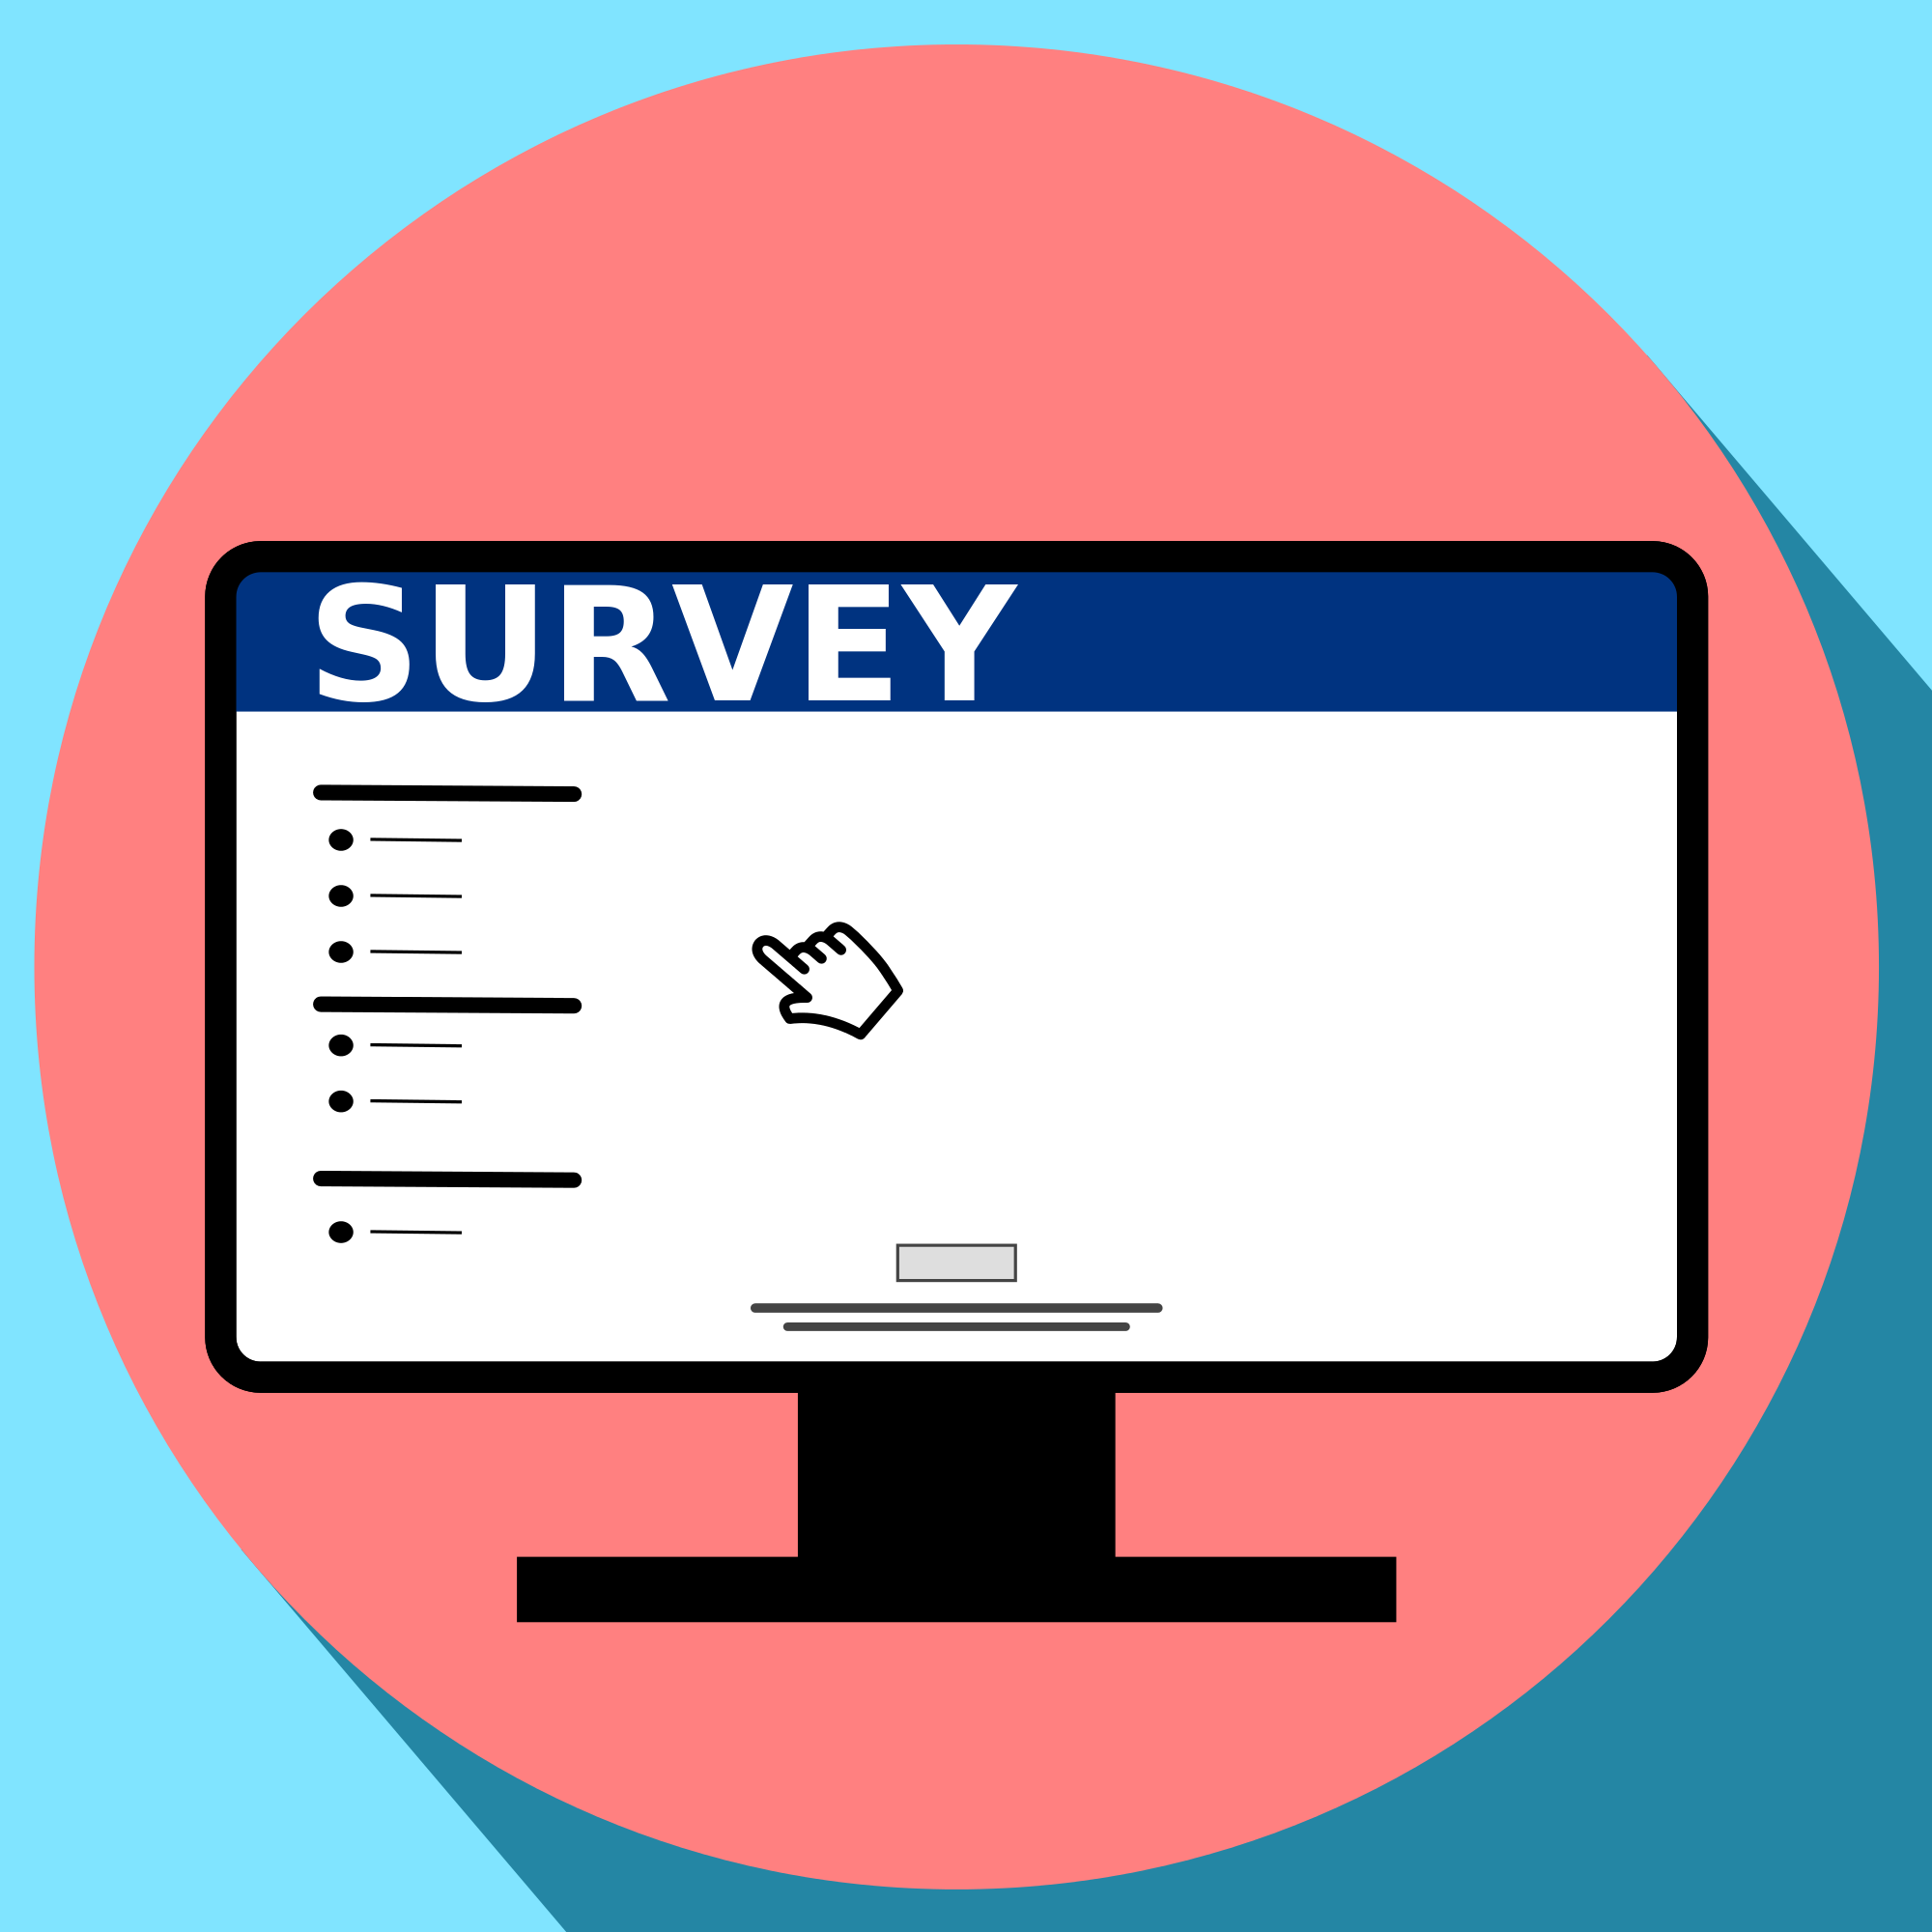 Graphic of survey on computer screen within a solid pink circle within a solid light blue square